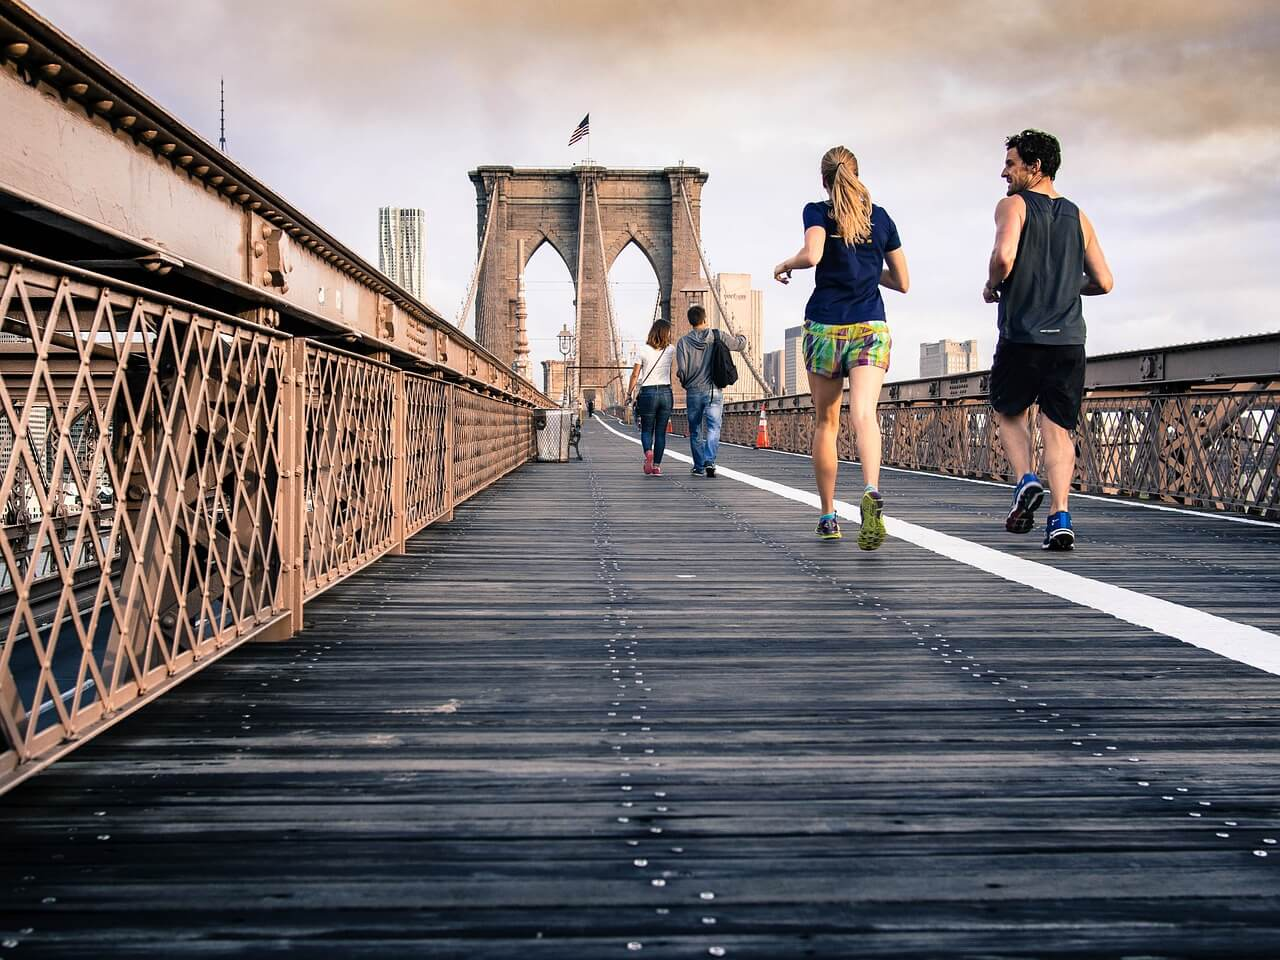 A couple is running on a bridge.